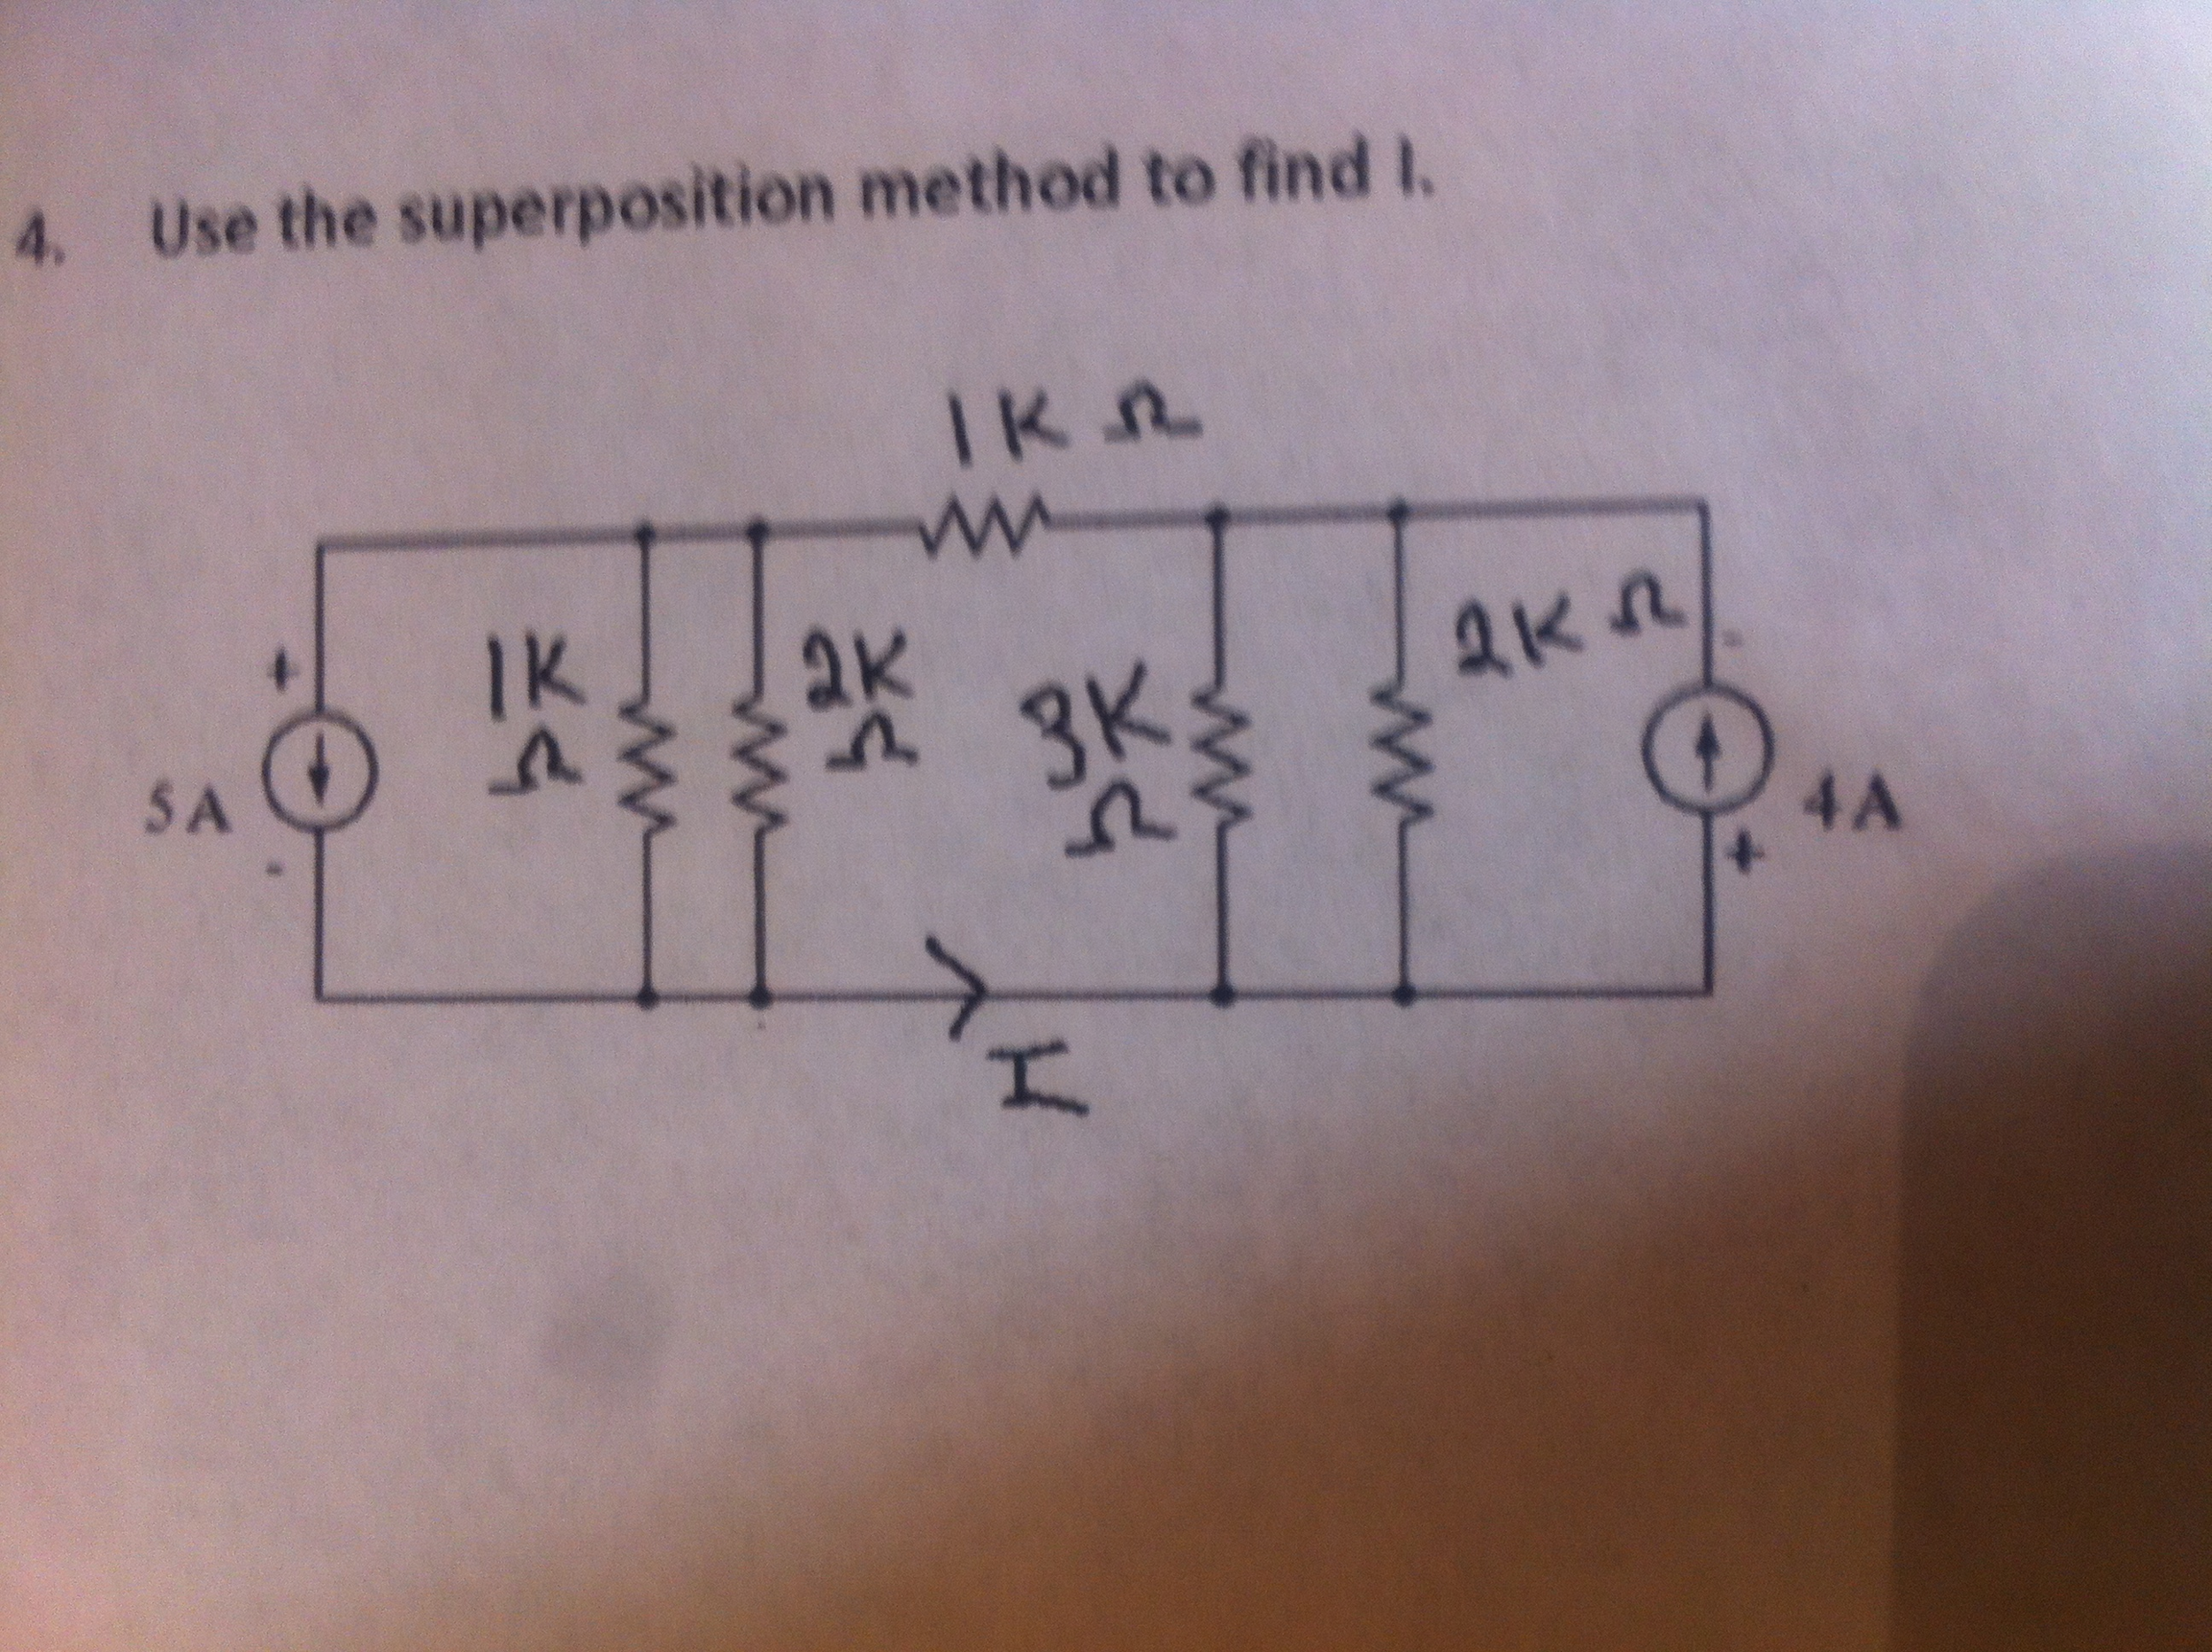 Use the superposition to find I